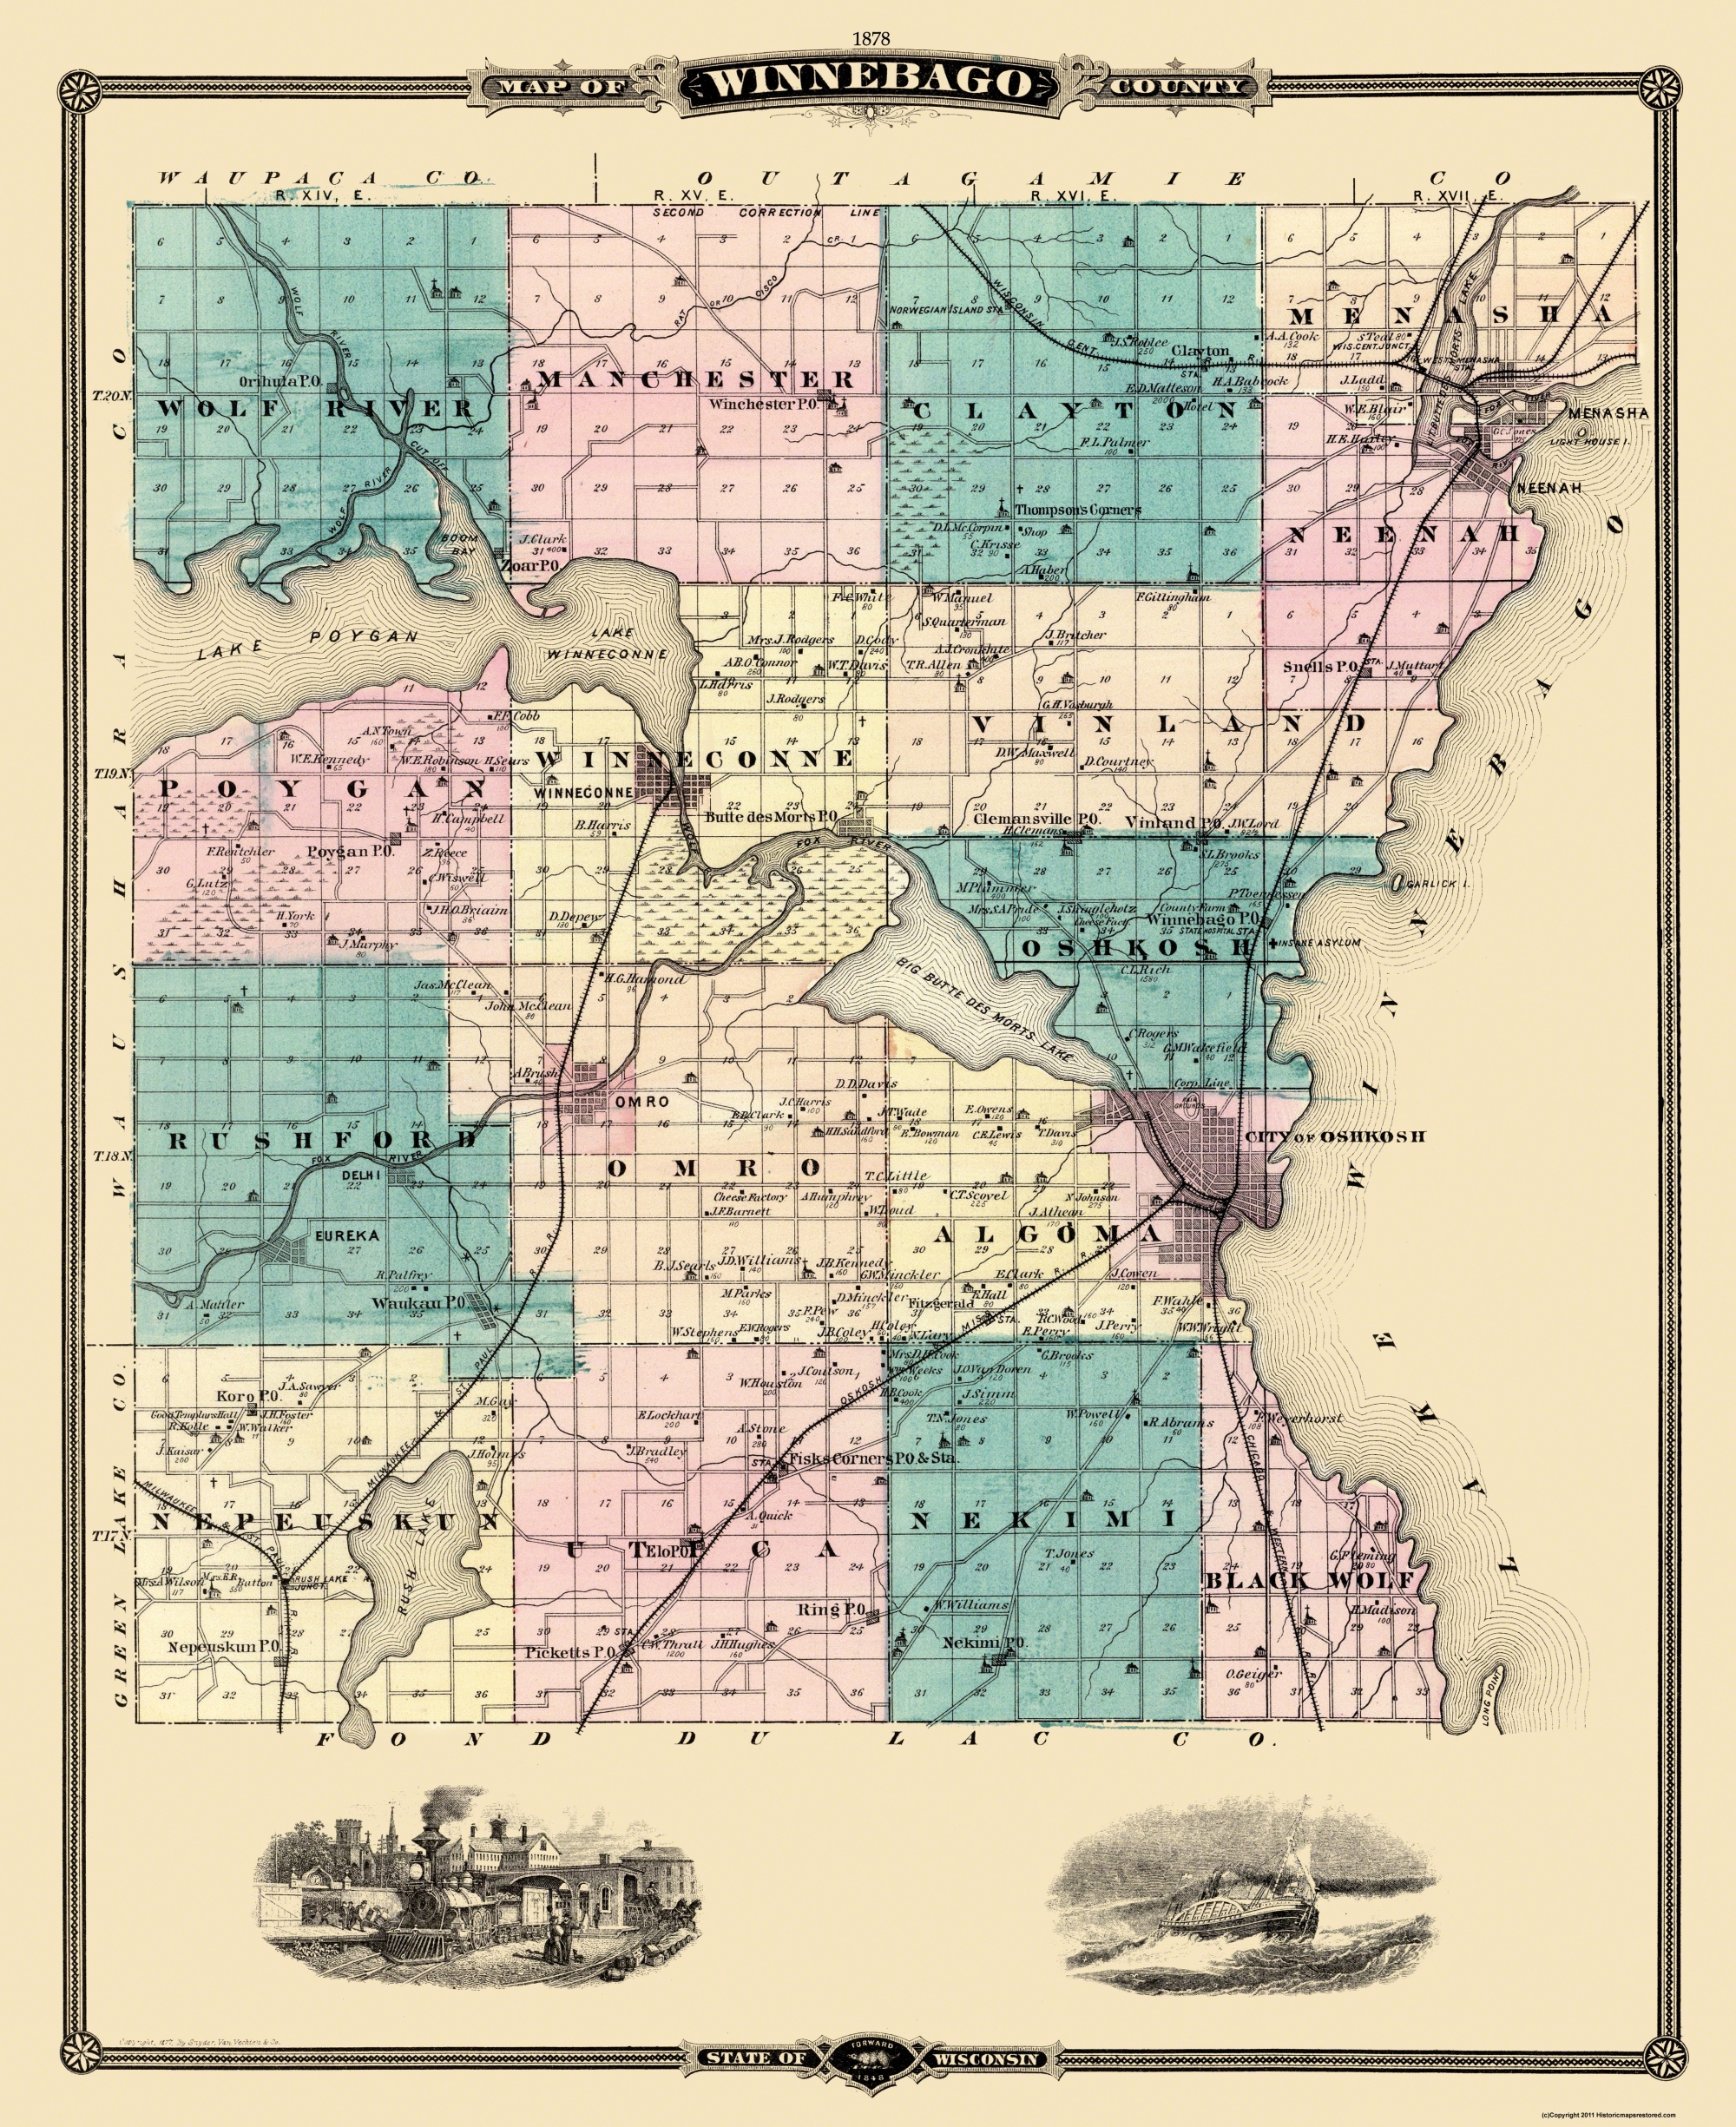 Old County Map Winnebago Wisconsin Landowner 1878